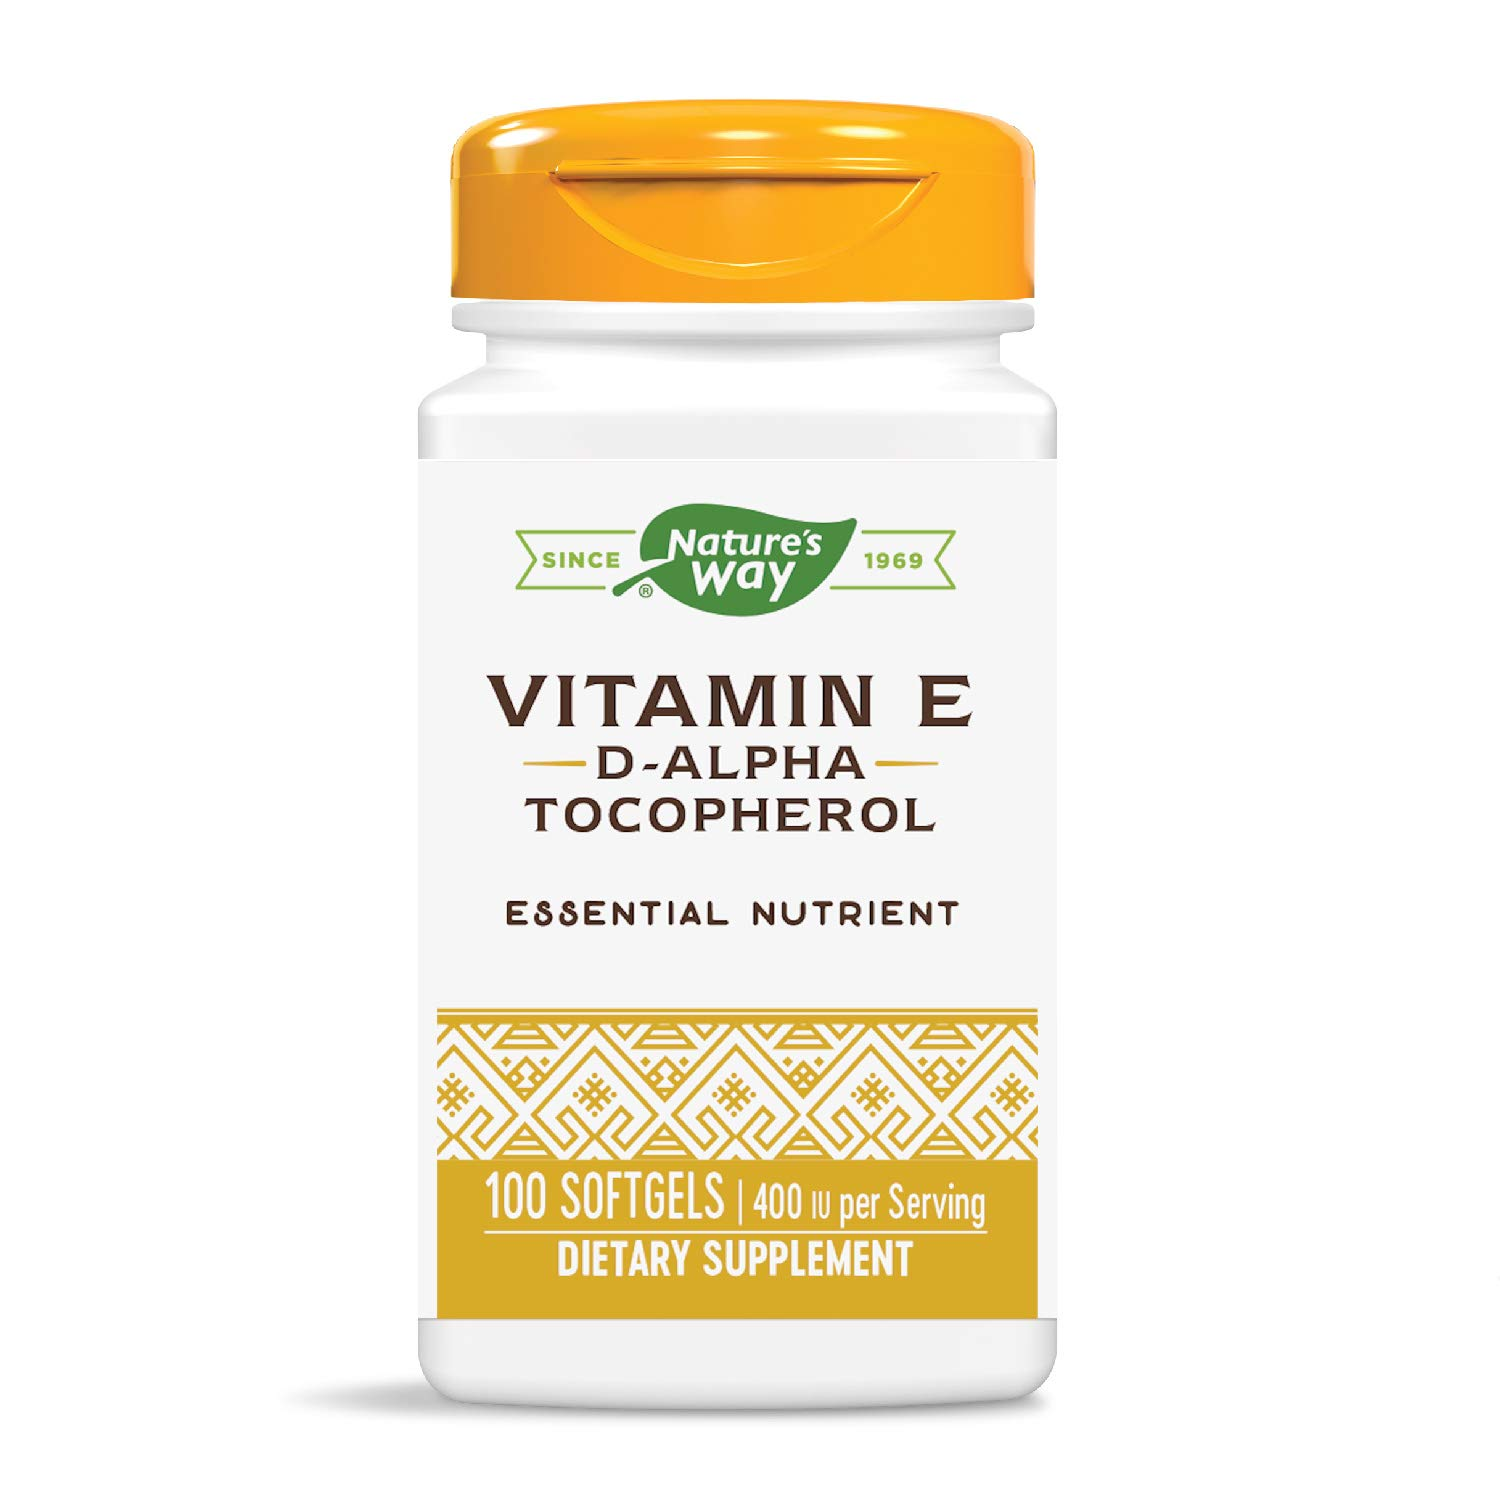 Nature's Way Vitamin E 400 IU, D-Alpha Tocopherol, Powerful Antioxidant, Helps Protect Against Free Radicals, 100 Softgels